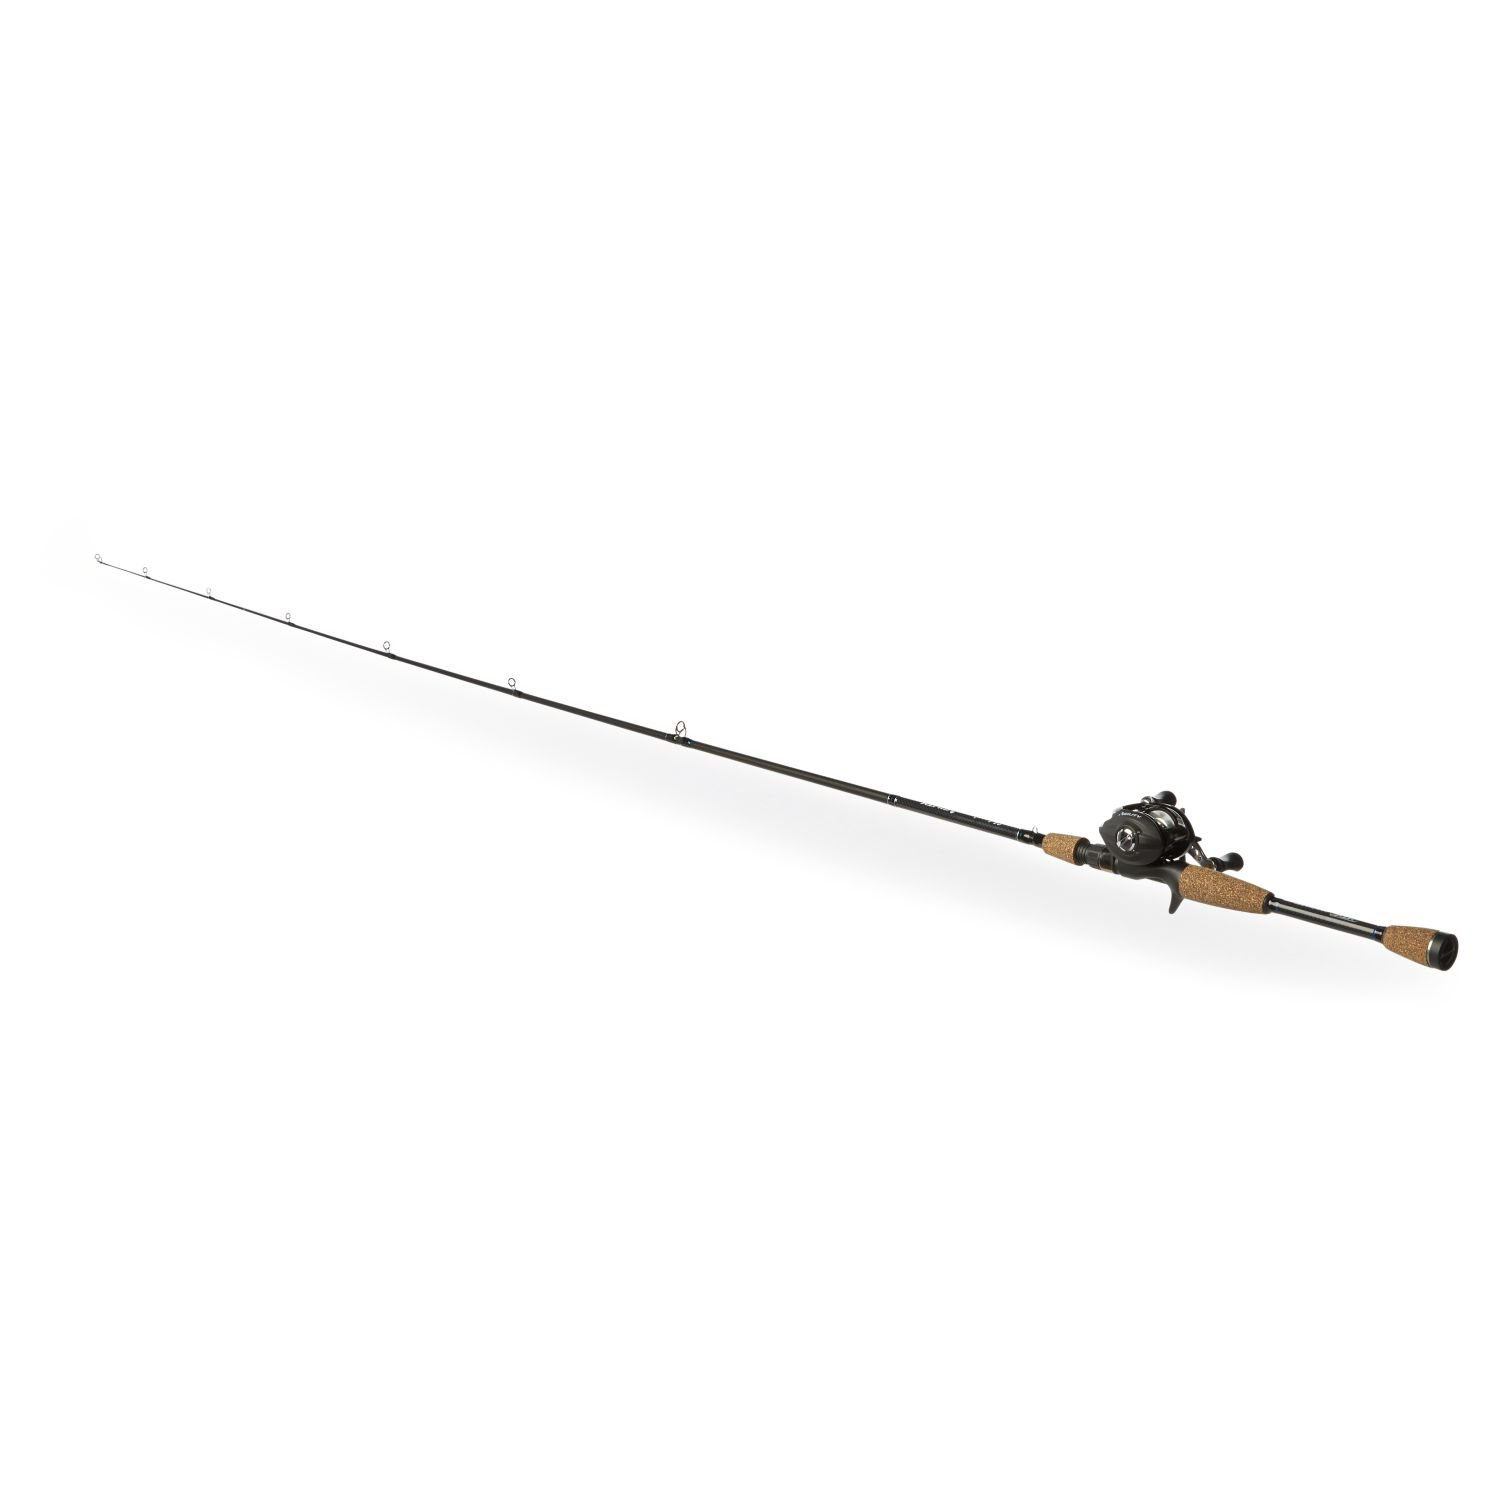 Shakespeare Agility Baitcast Rod and Reel Combo